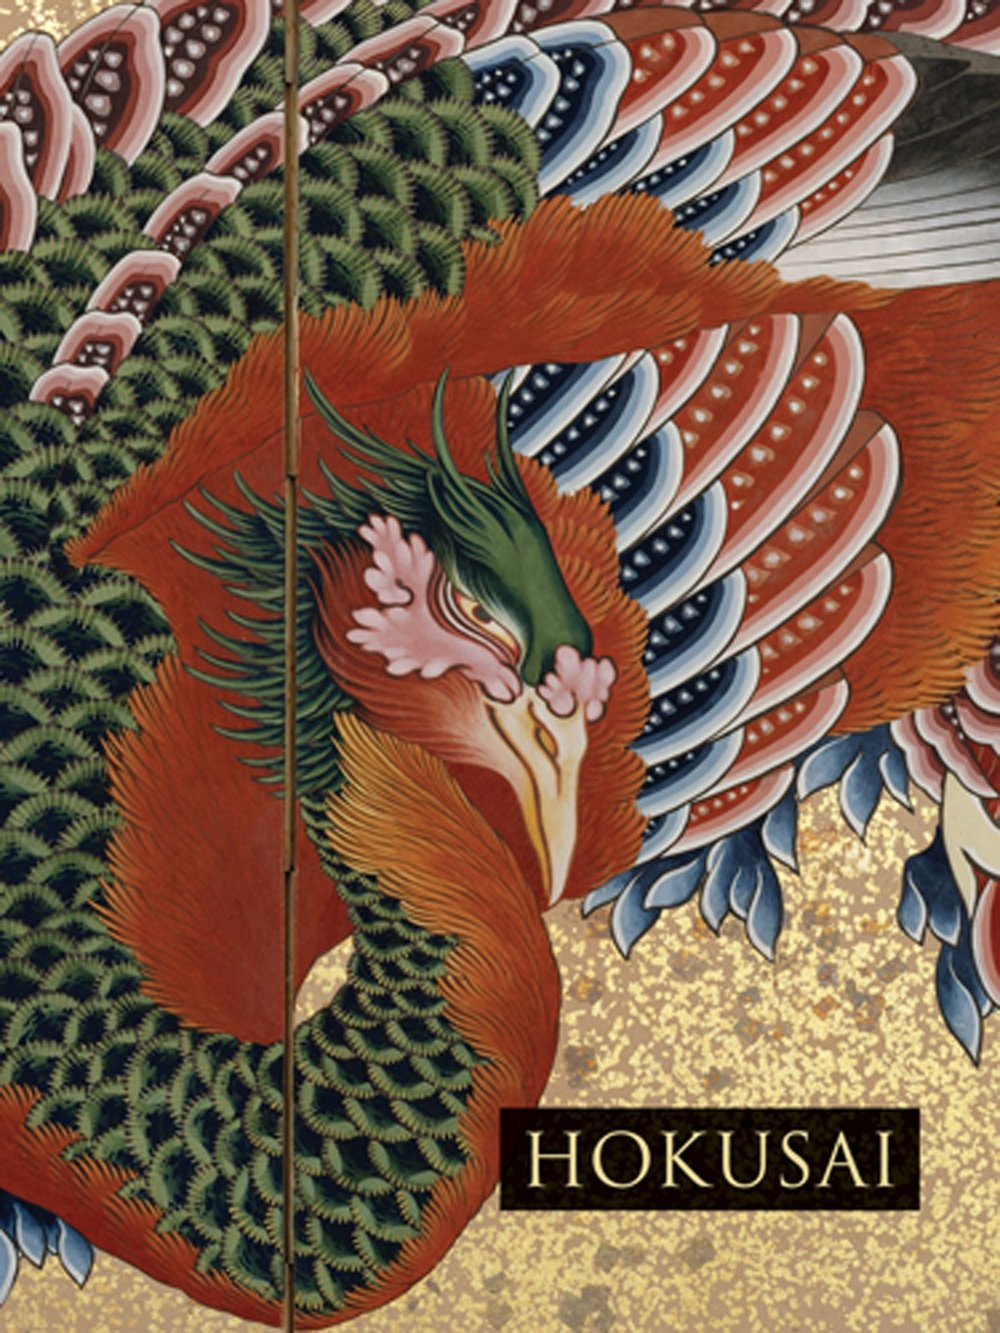 This is a beautifully illustrated book of Hokusai's work. I find that just looking and enjoying the work, that I am finding inspiration.